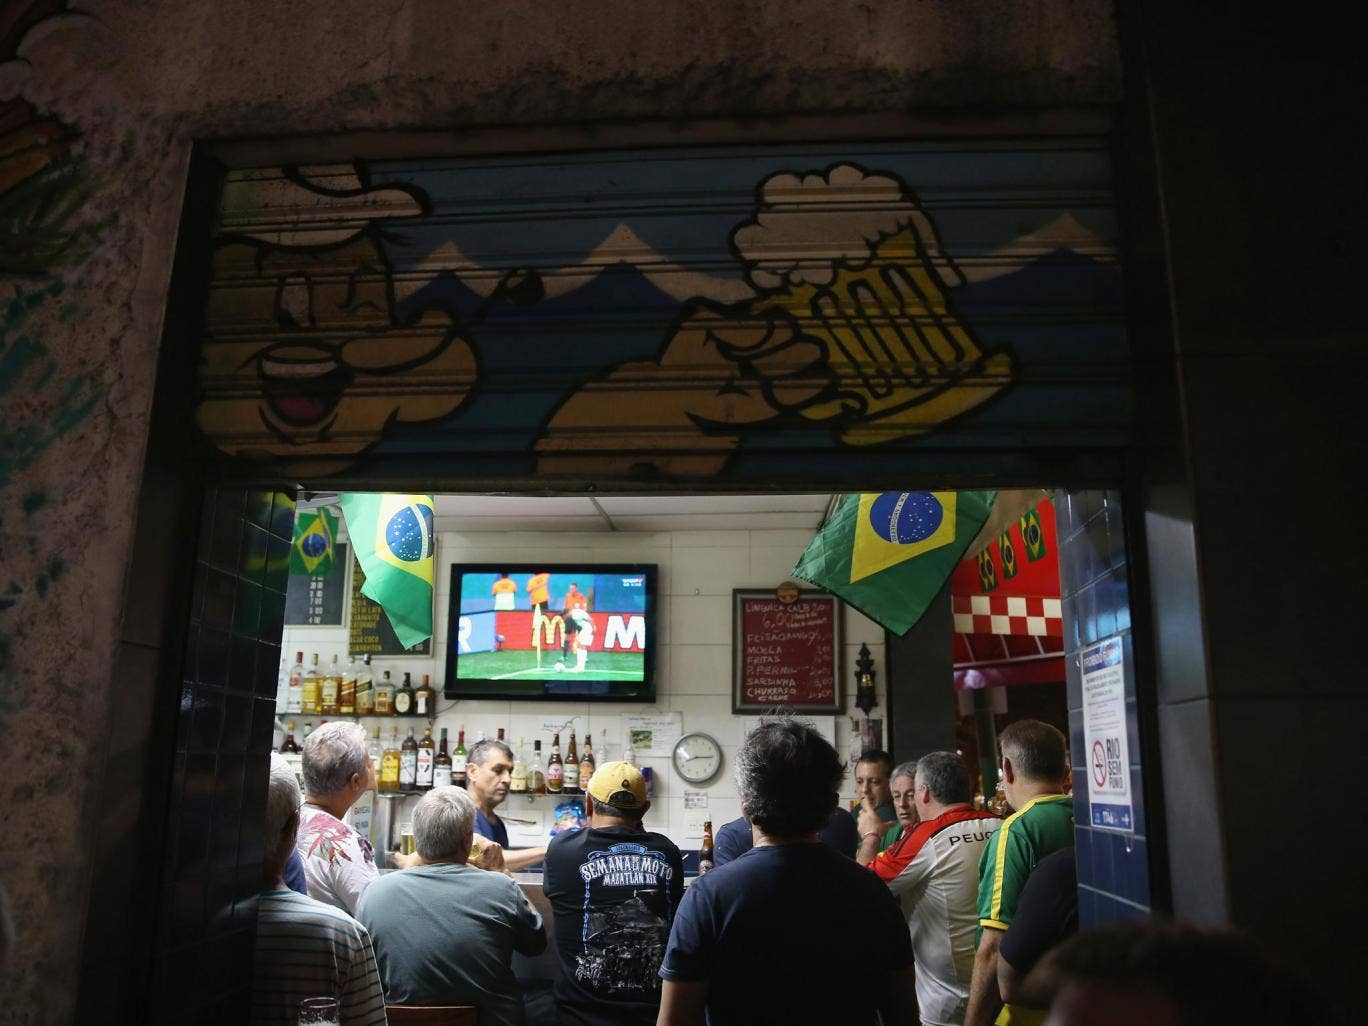 Fans watch and argue over World Cup coverage in a bar in Brazil